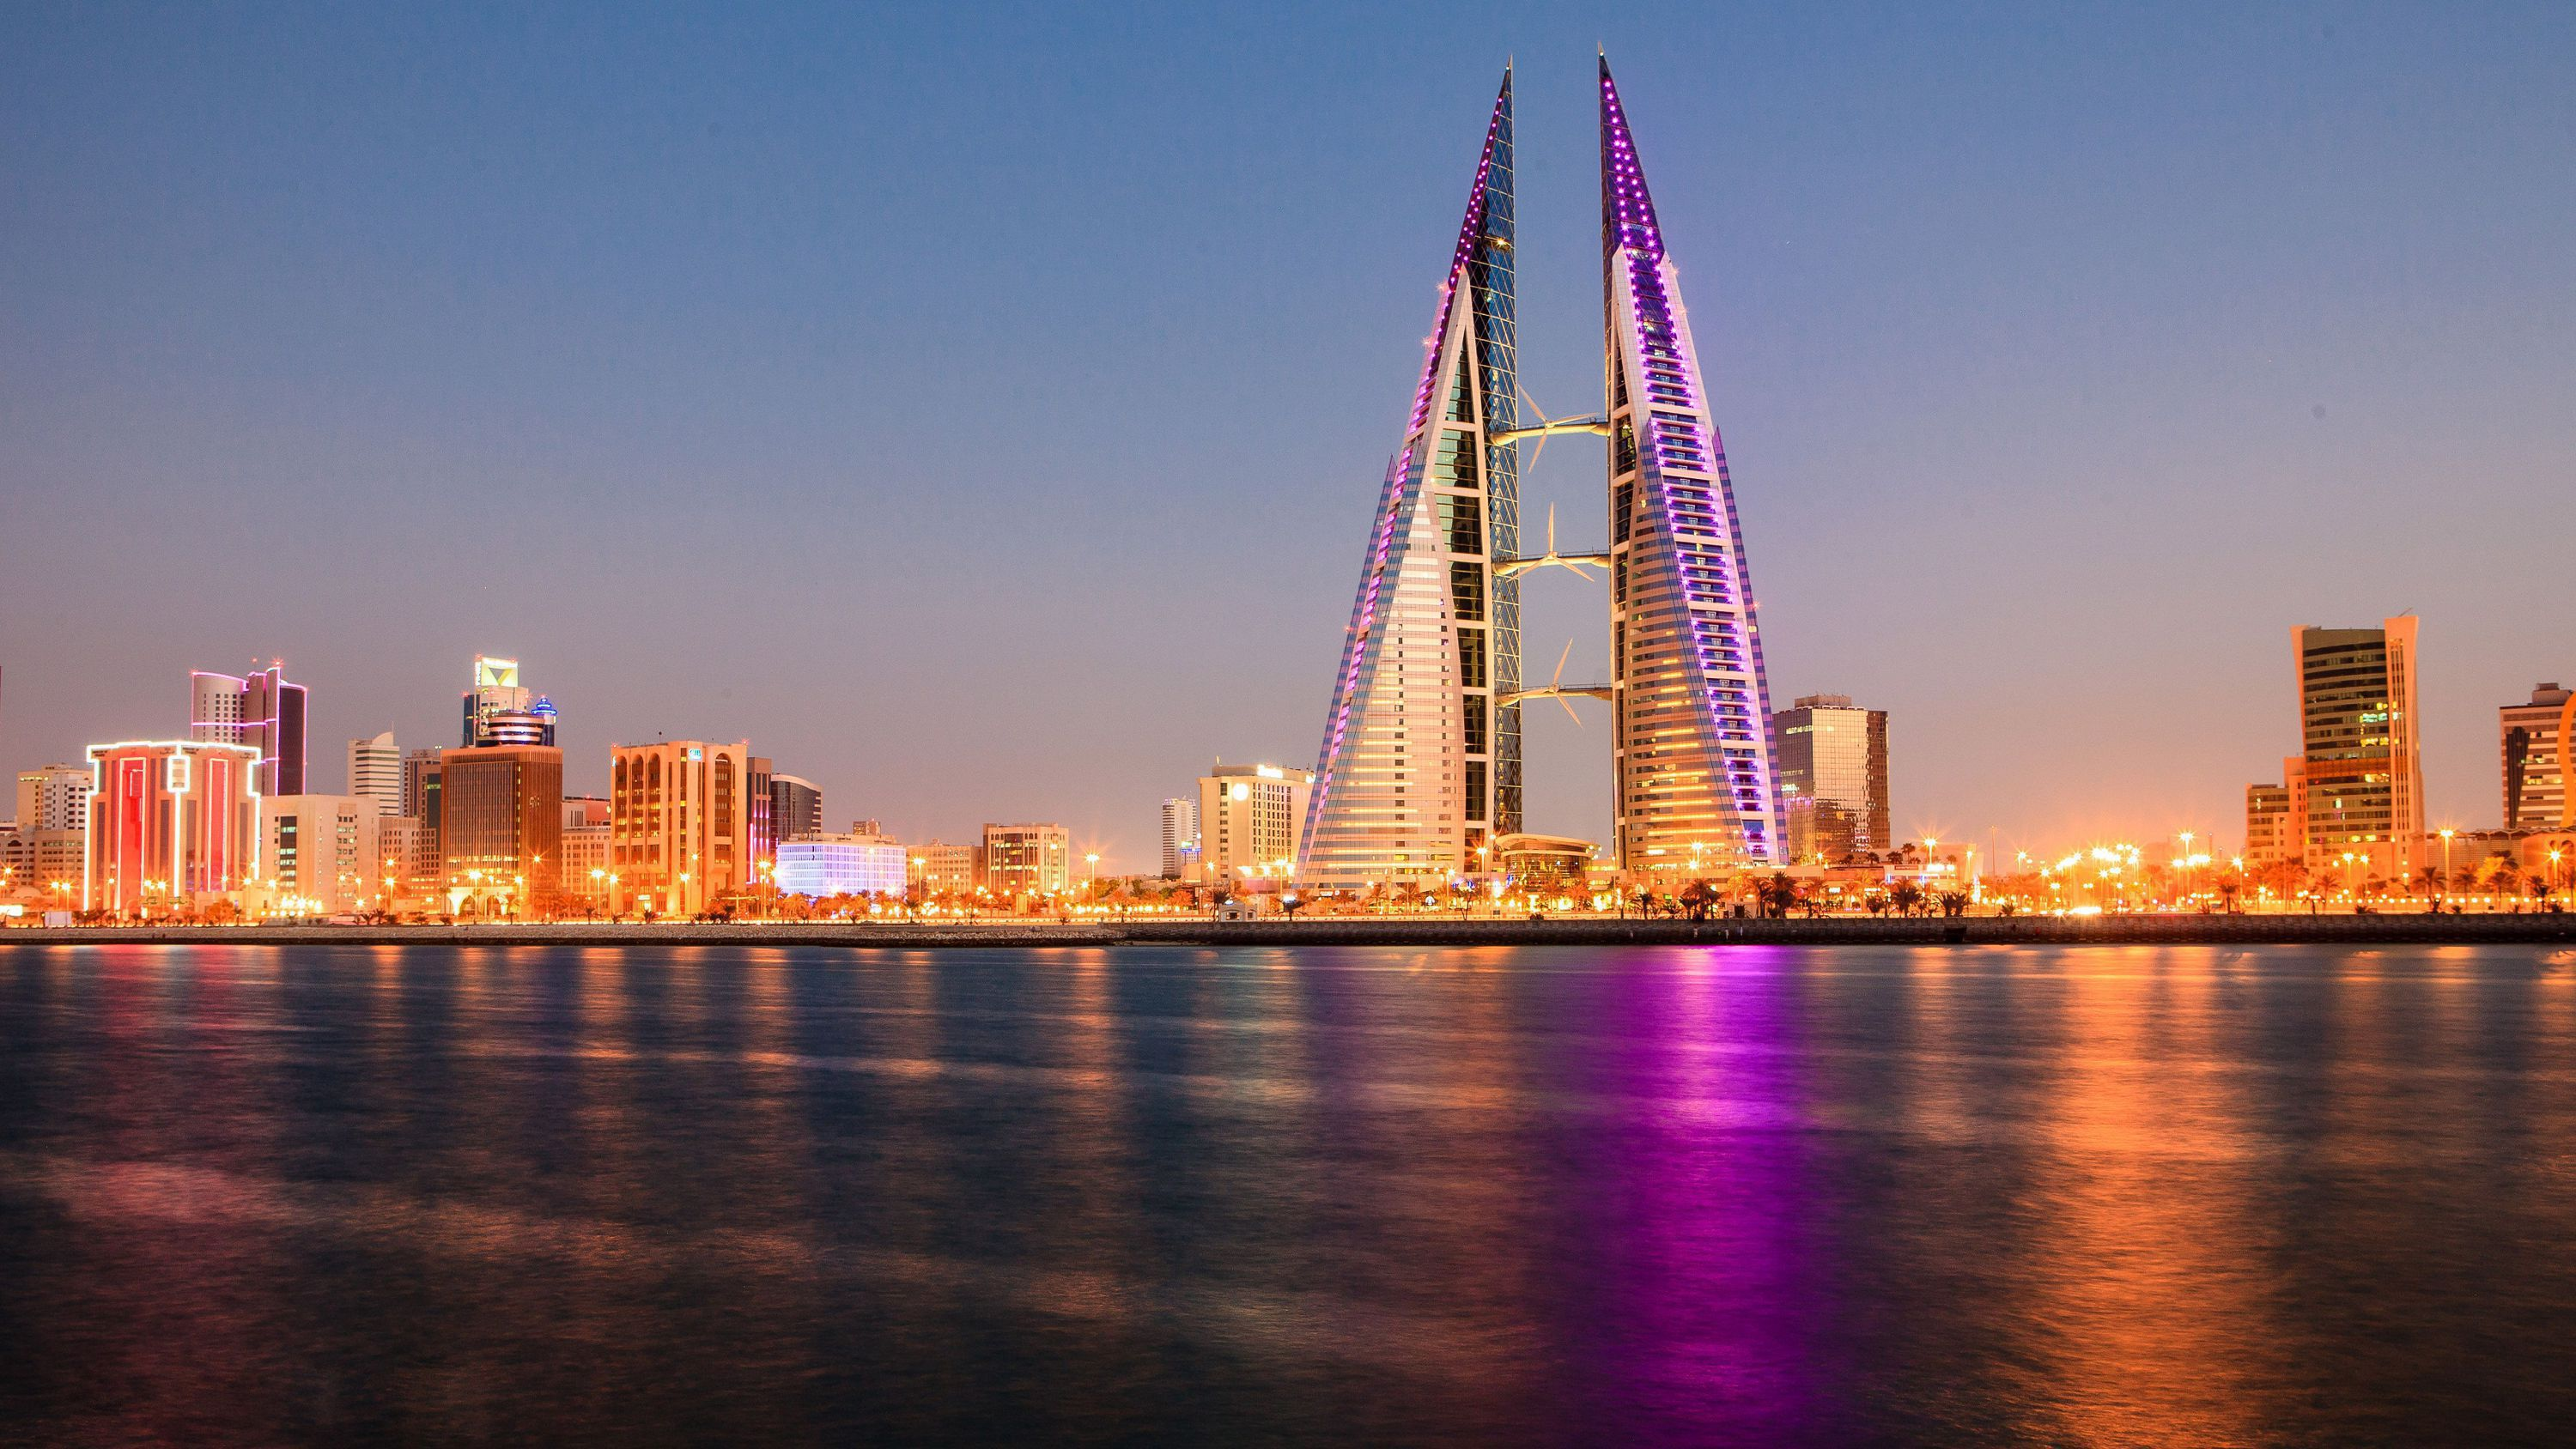 Bahrain Twin Towers